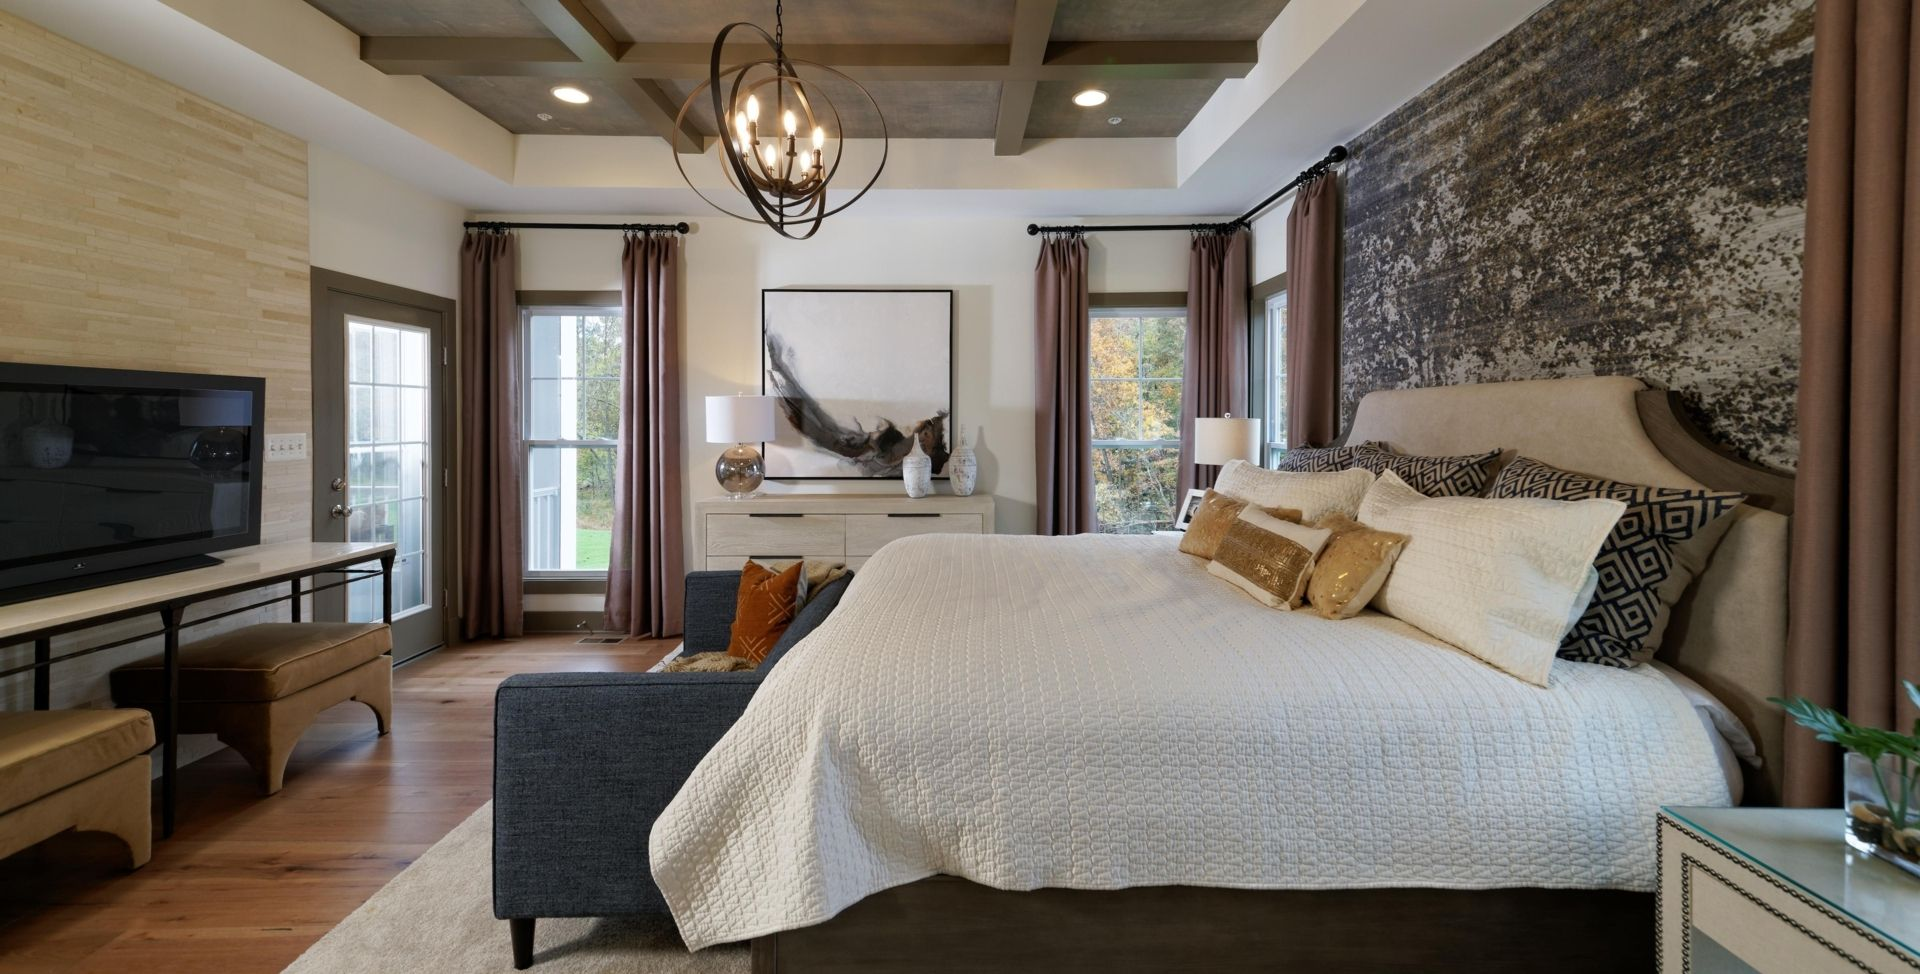 Bedroom featured in the Capri By Mid-Atlantic Builders in Washington, MD